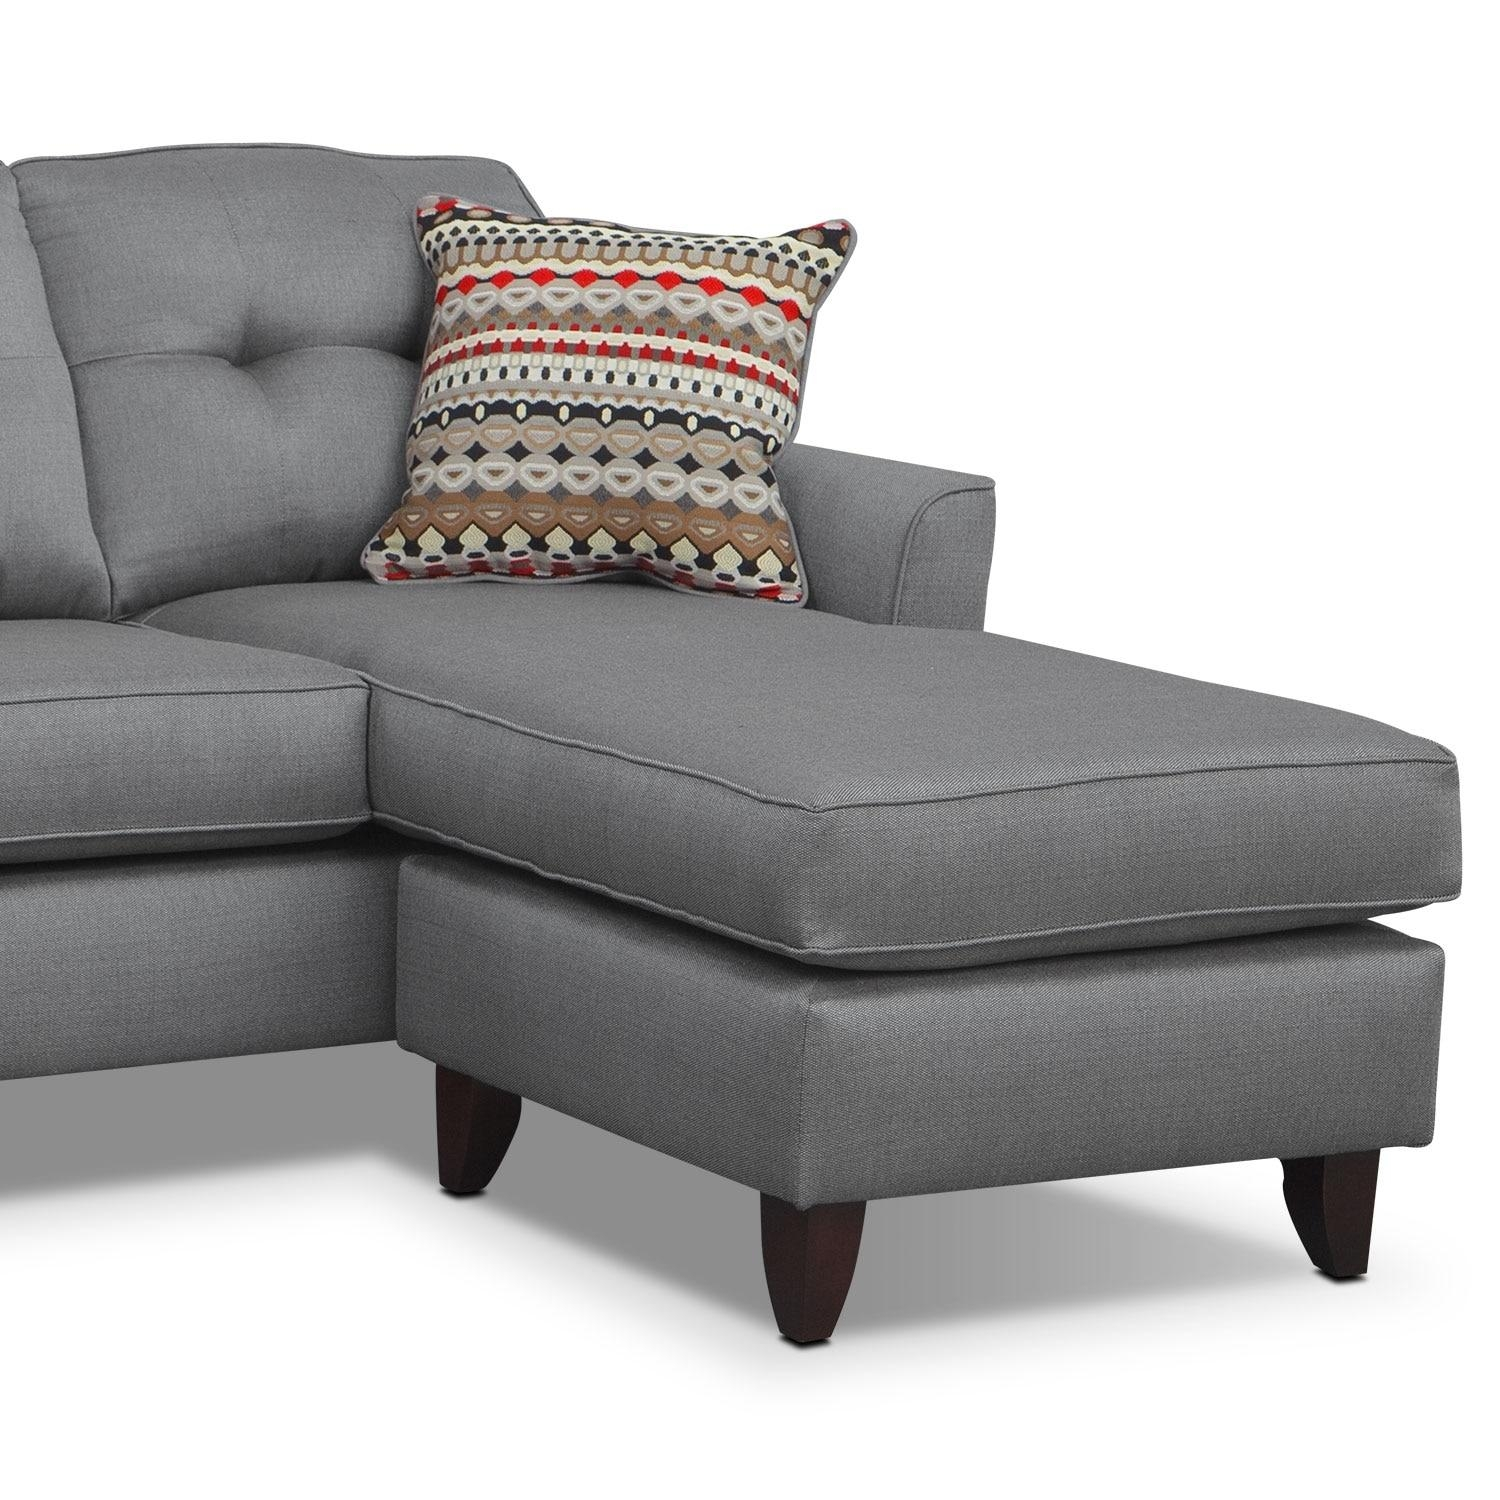 Marco Chaise Sofa – Gray | Value City Furniture Intended For Chaise Sofa Chairs (View 7 of 20)